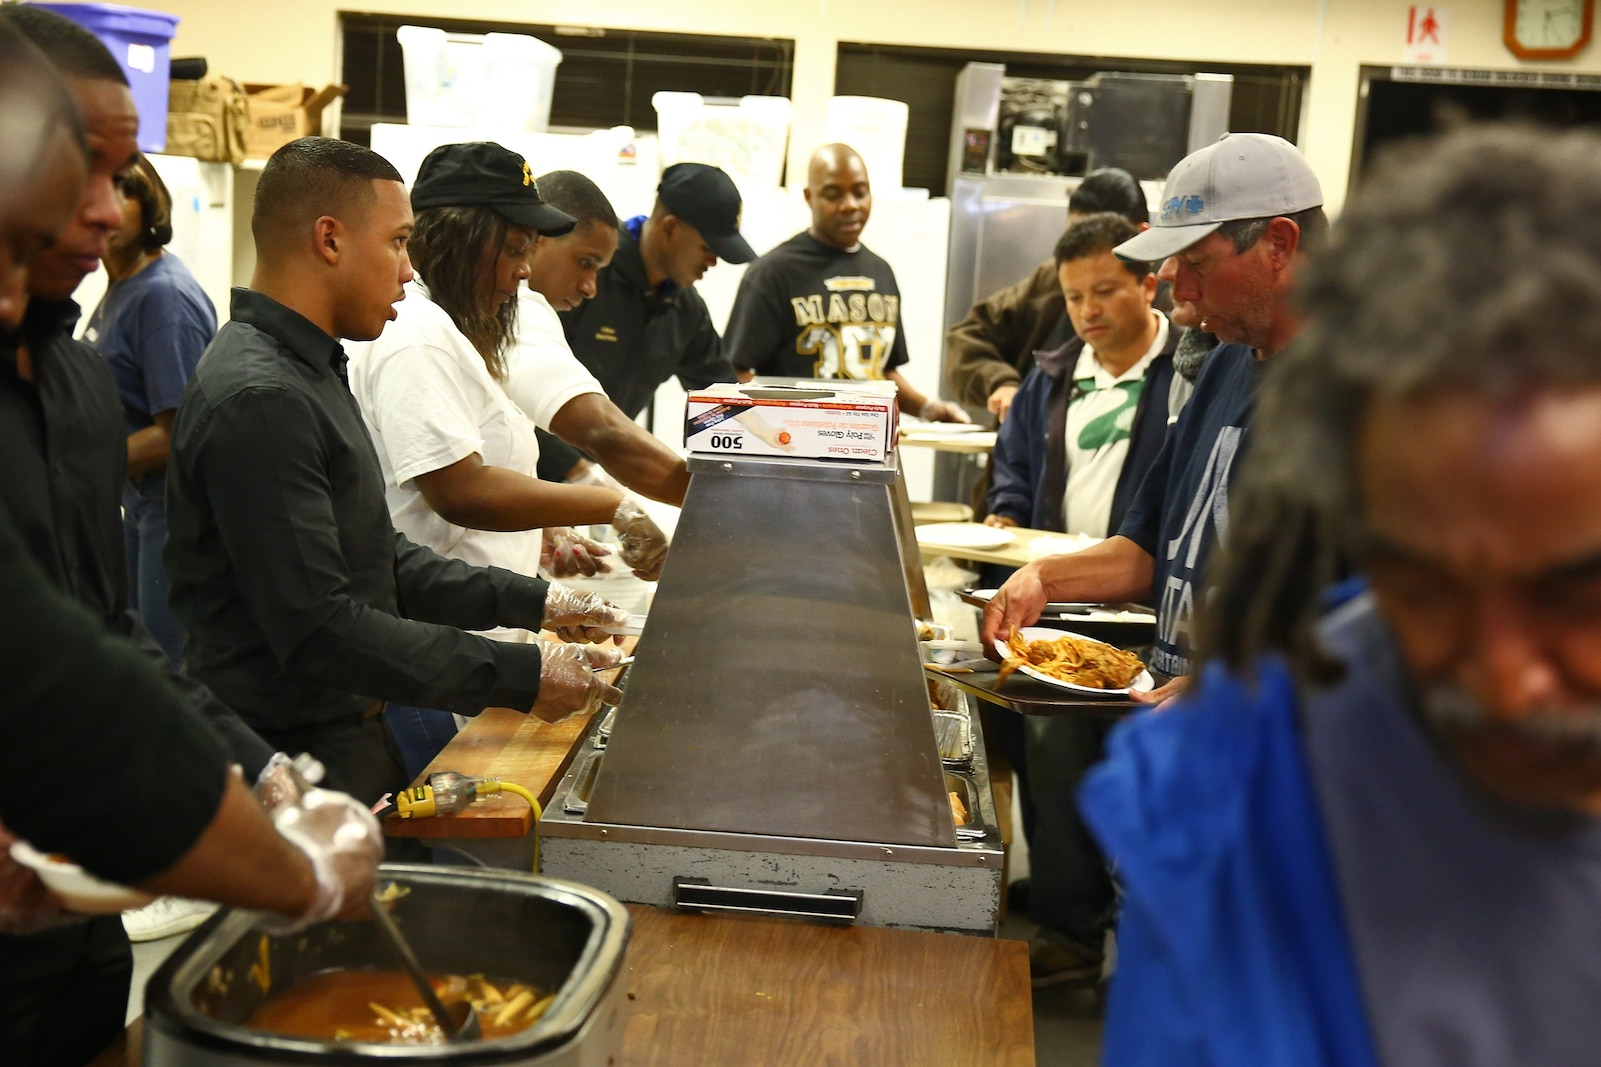 Servicemembers from Camp Pendleton and local volunteers serve food at the Bread of Life Rescue Mission in Oceanside, Calif., Jan. 28. Nine Marines and one sailor, with the help of several community volunteers, prepared and served a free dinner for local homeless and others in need at the Mission.